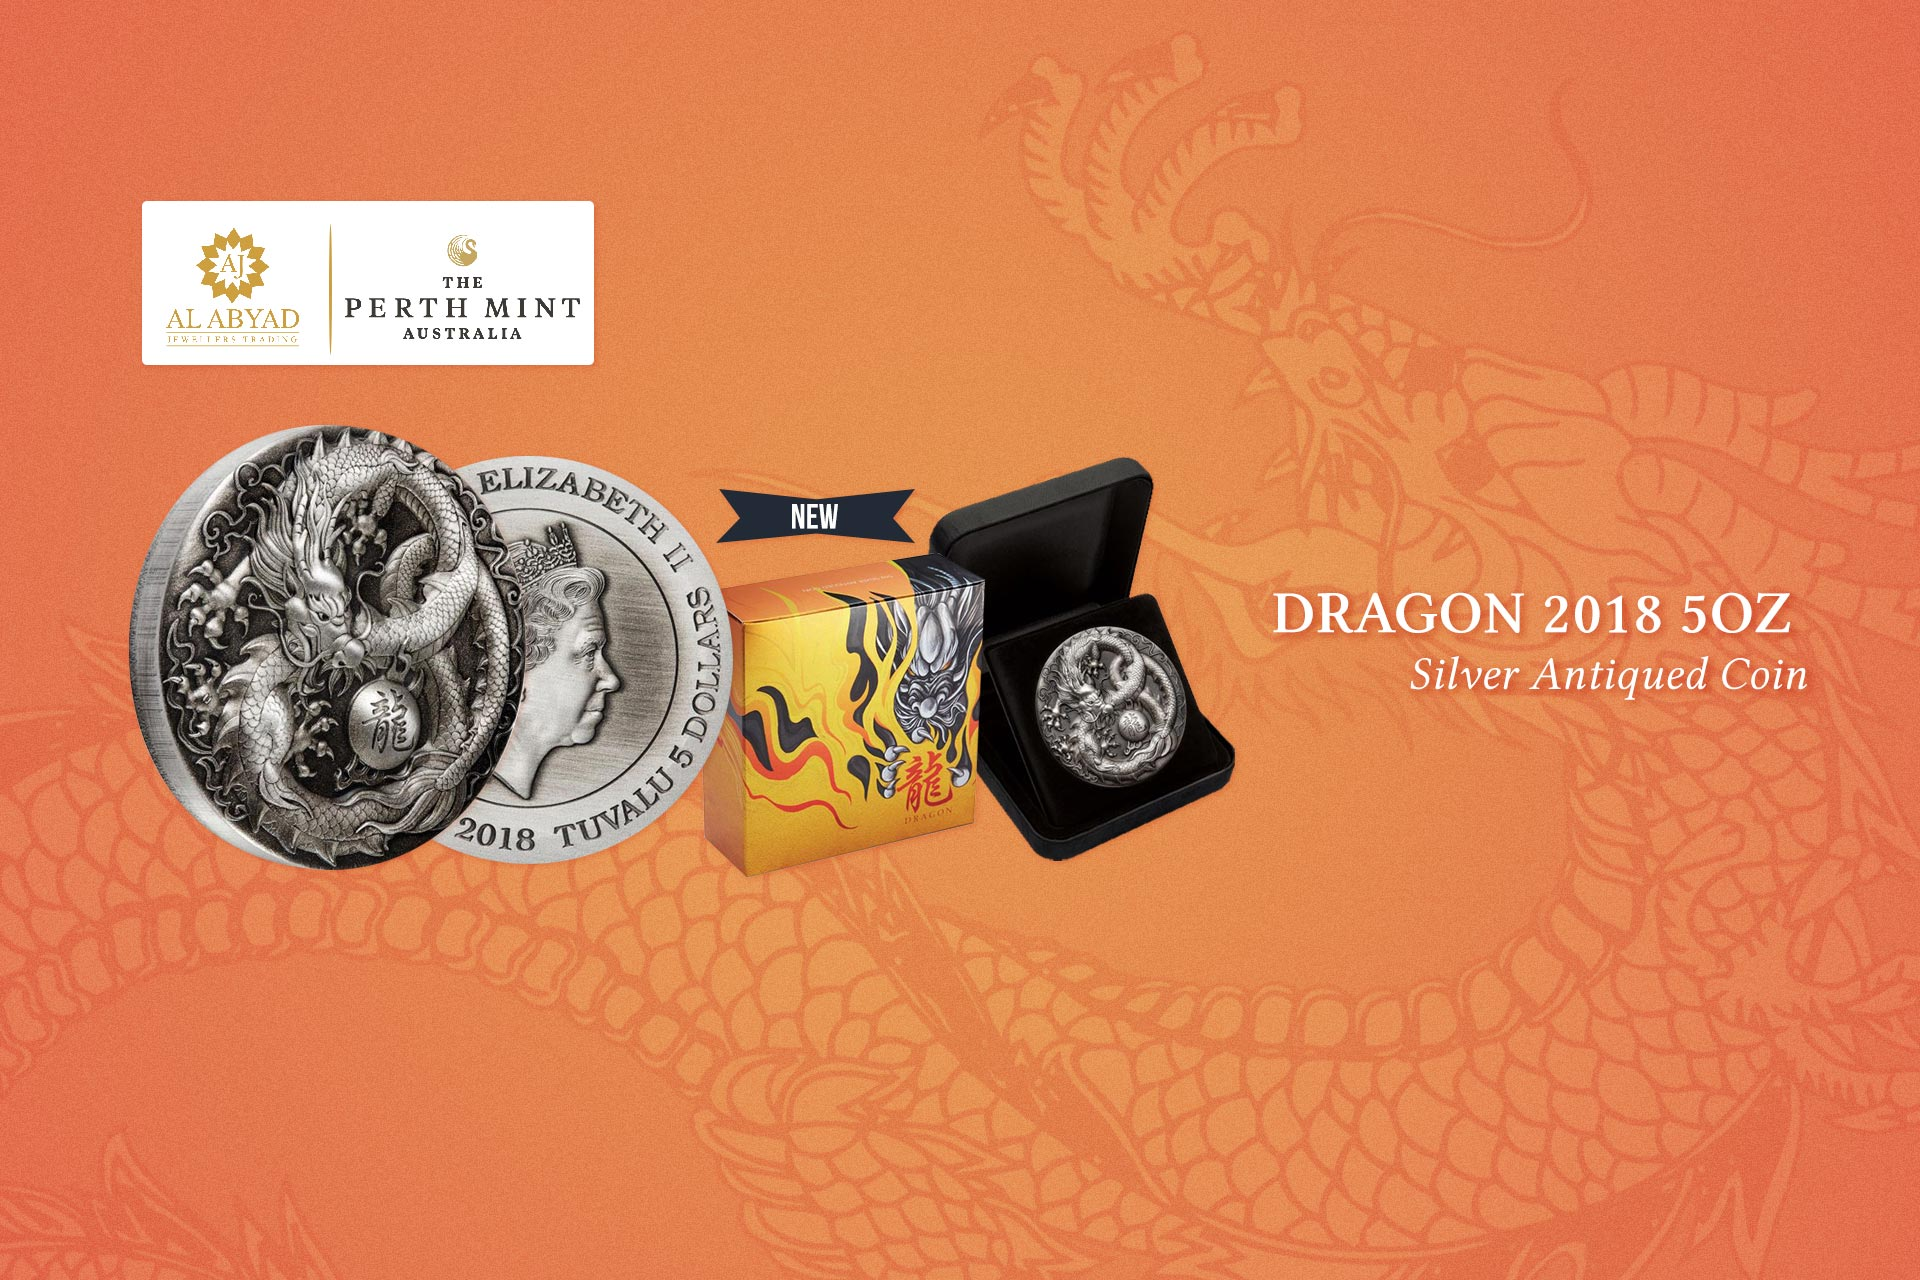 Dragon-Silver-Antiqued-Coin-2018